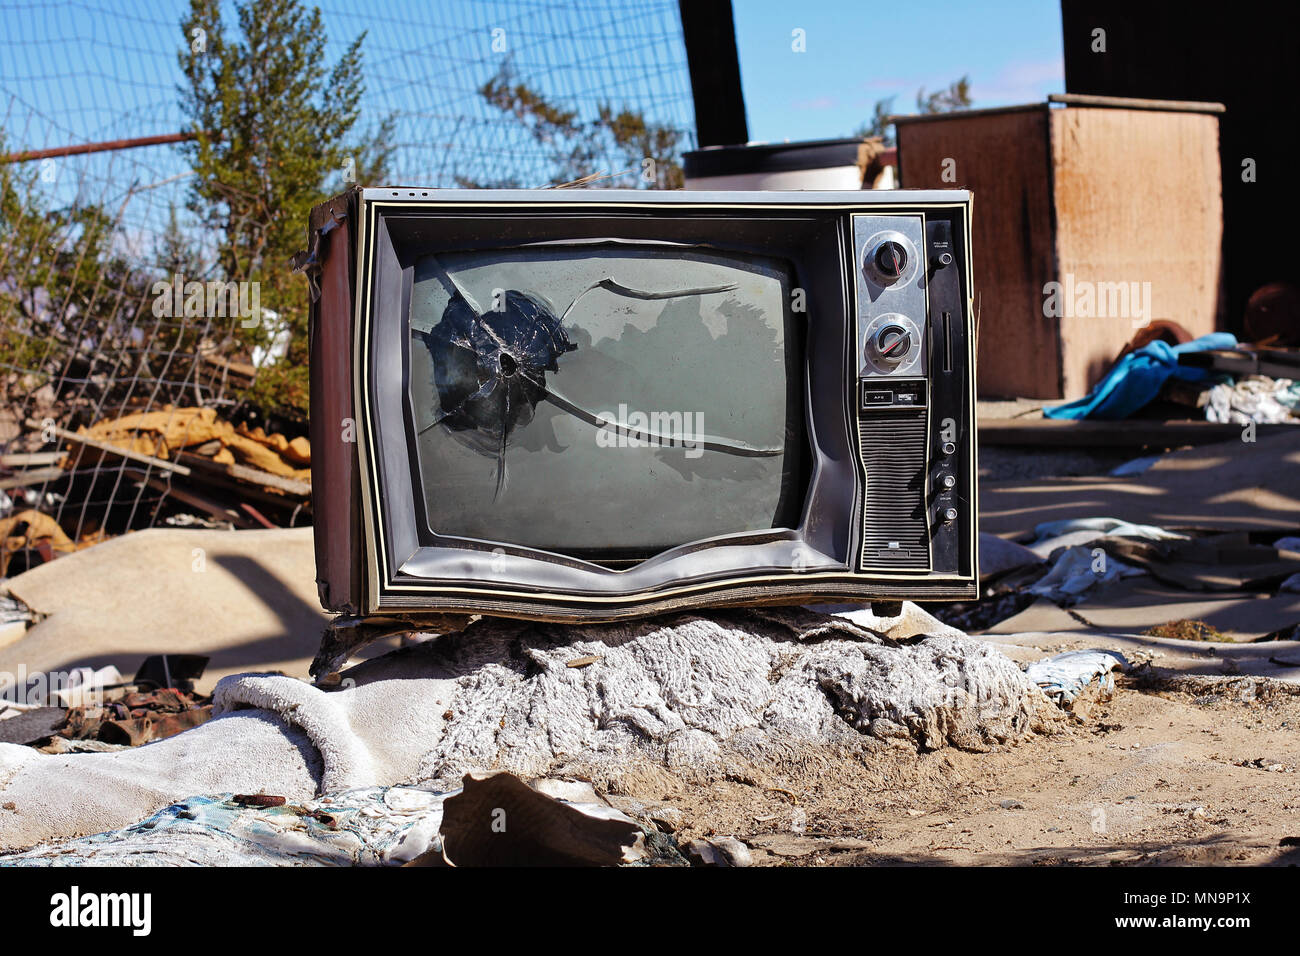 An old TV, shattered by a bullet hole, in a garbage pile behind a wrecked abandoned house, Wonder Valley, California, USA. High desert, Mojave. - Stock Image